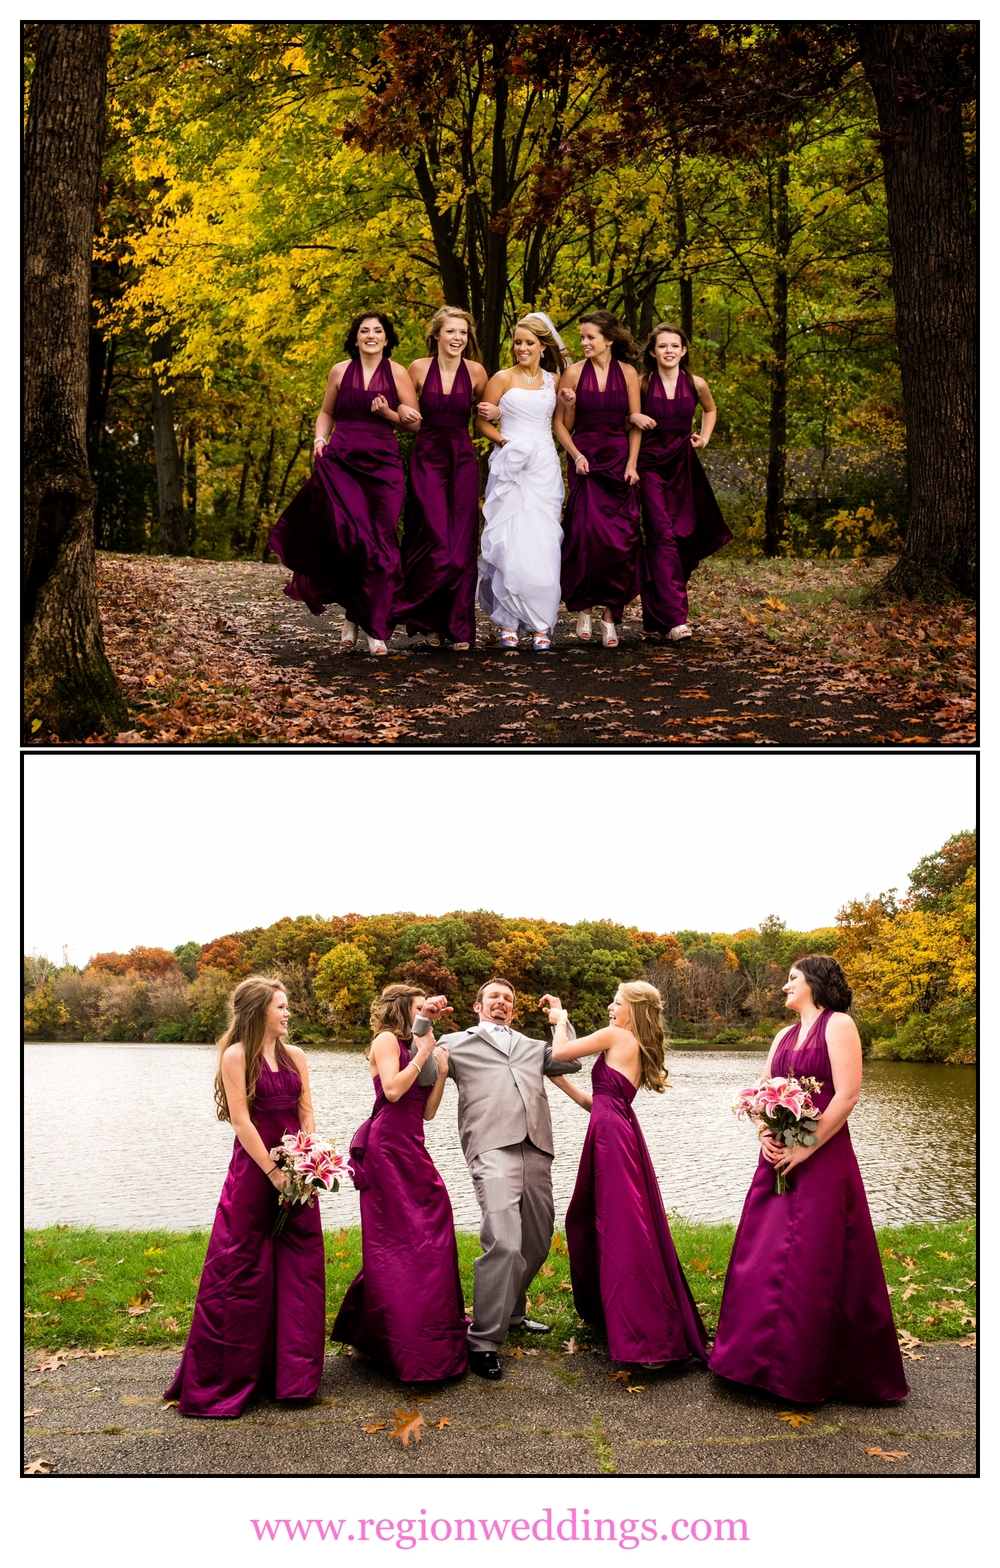 Fun, Fall wedding photos at Lemon Lake Park.